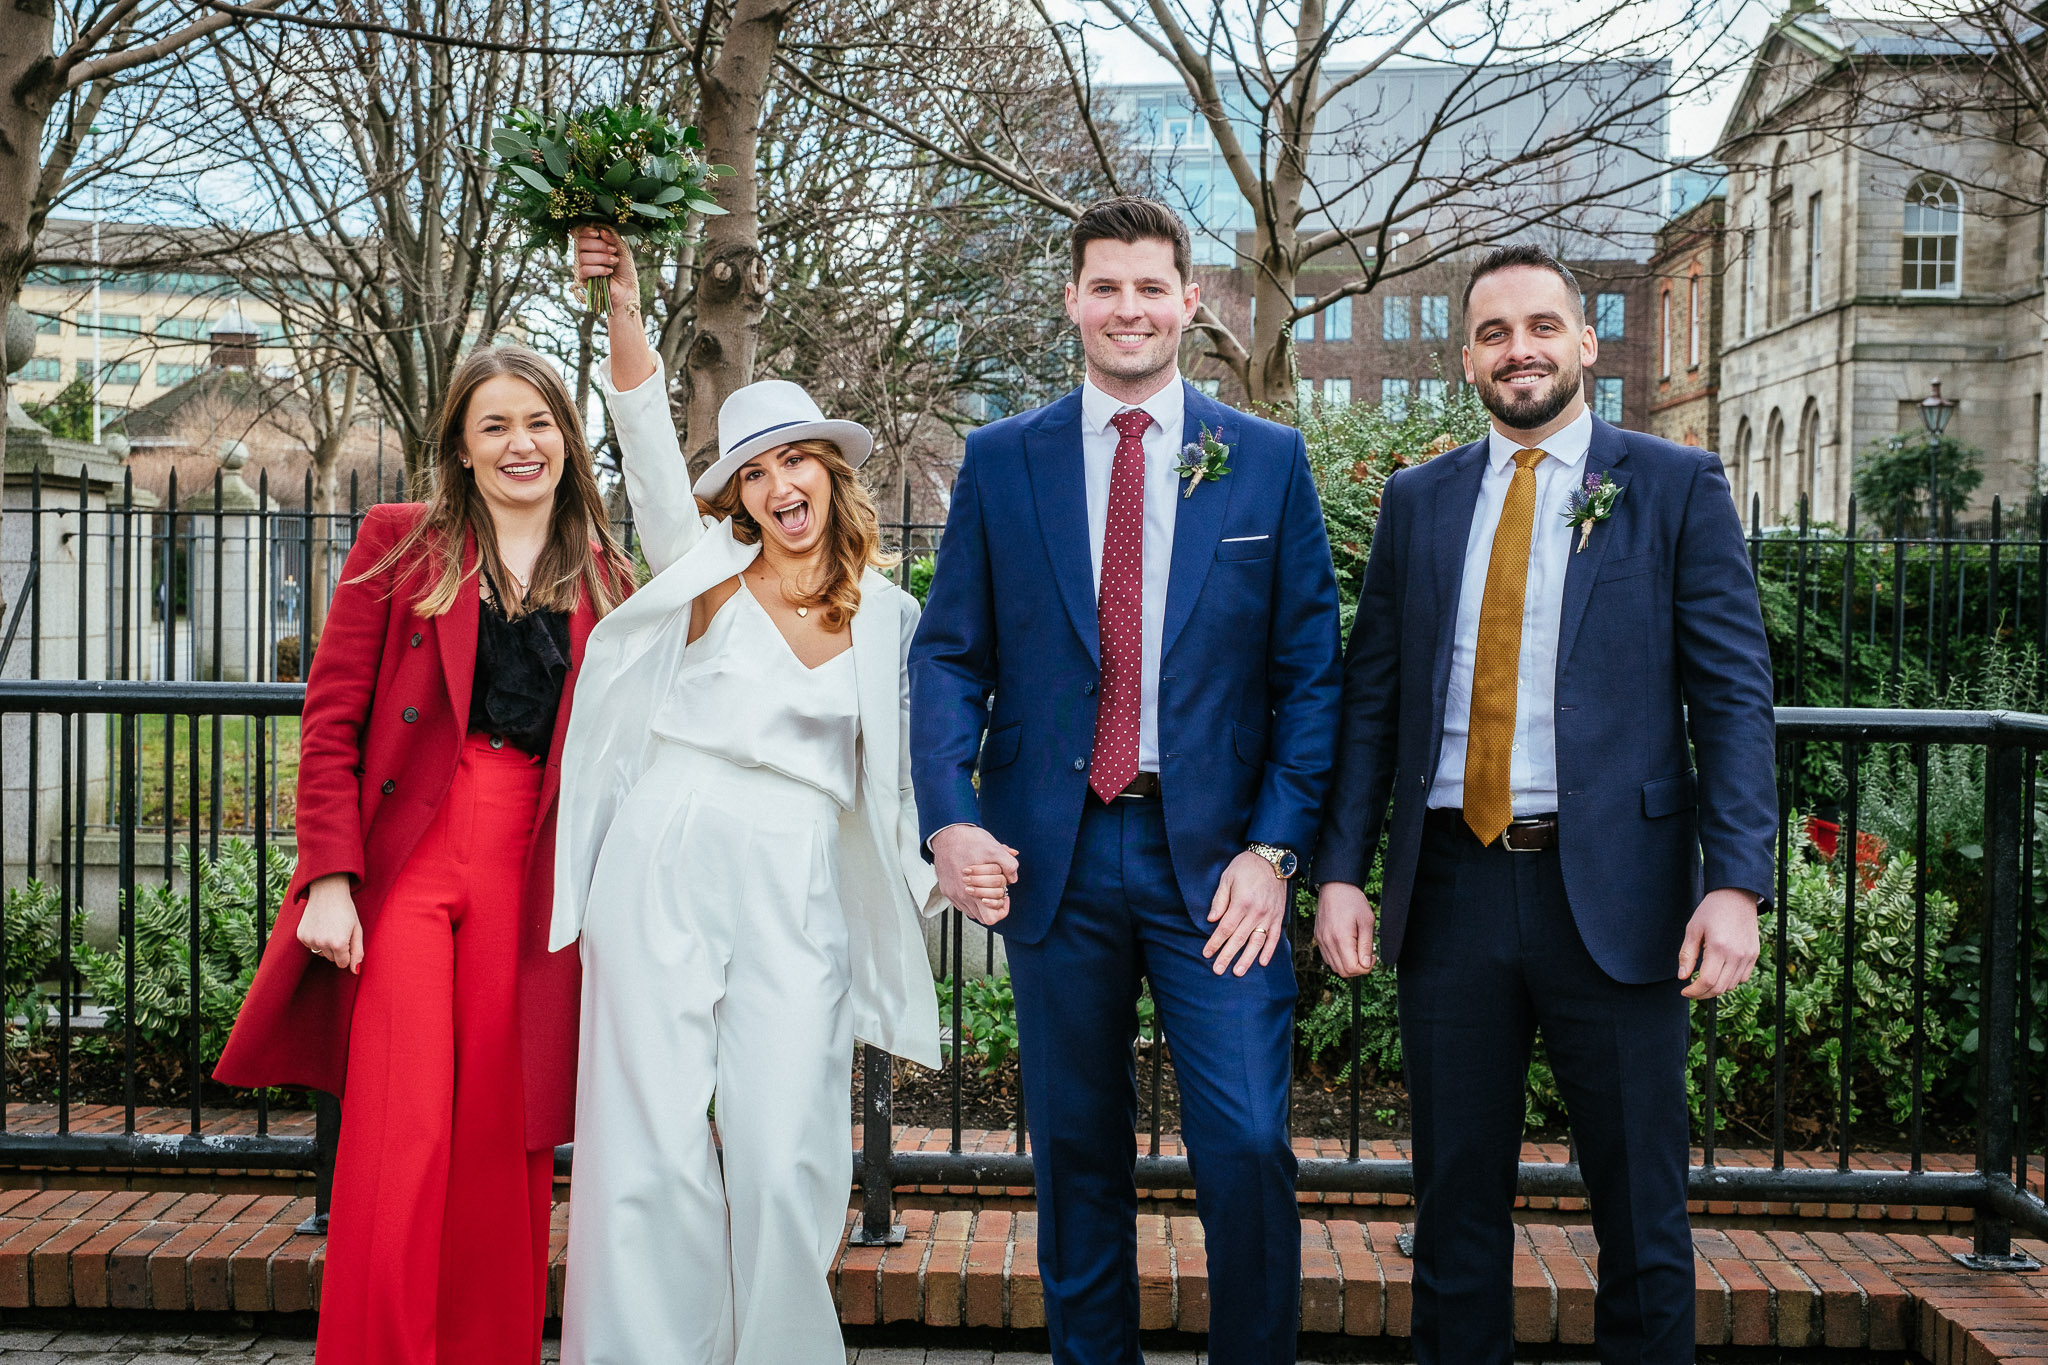 Dublin registry office wedding Photographer 2 2 2